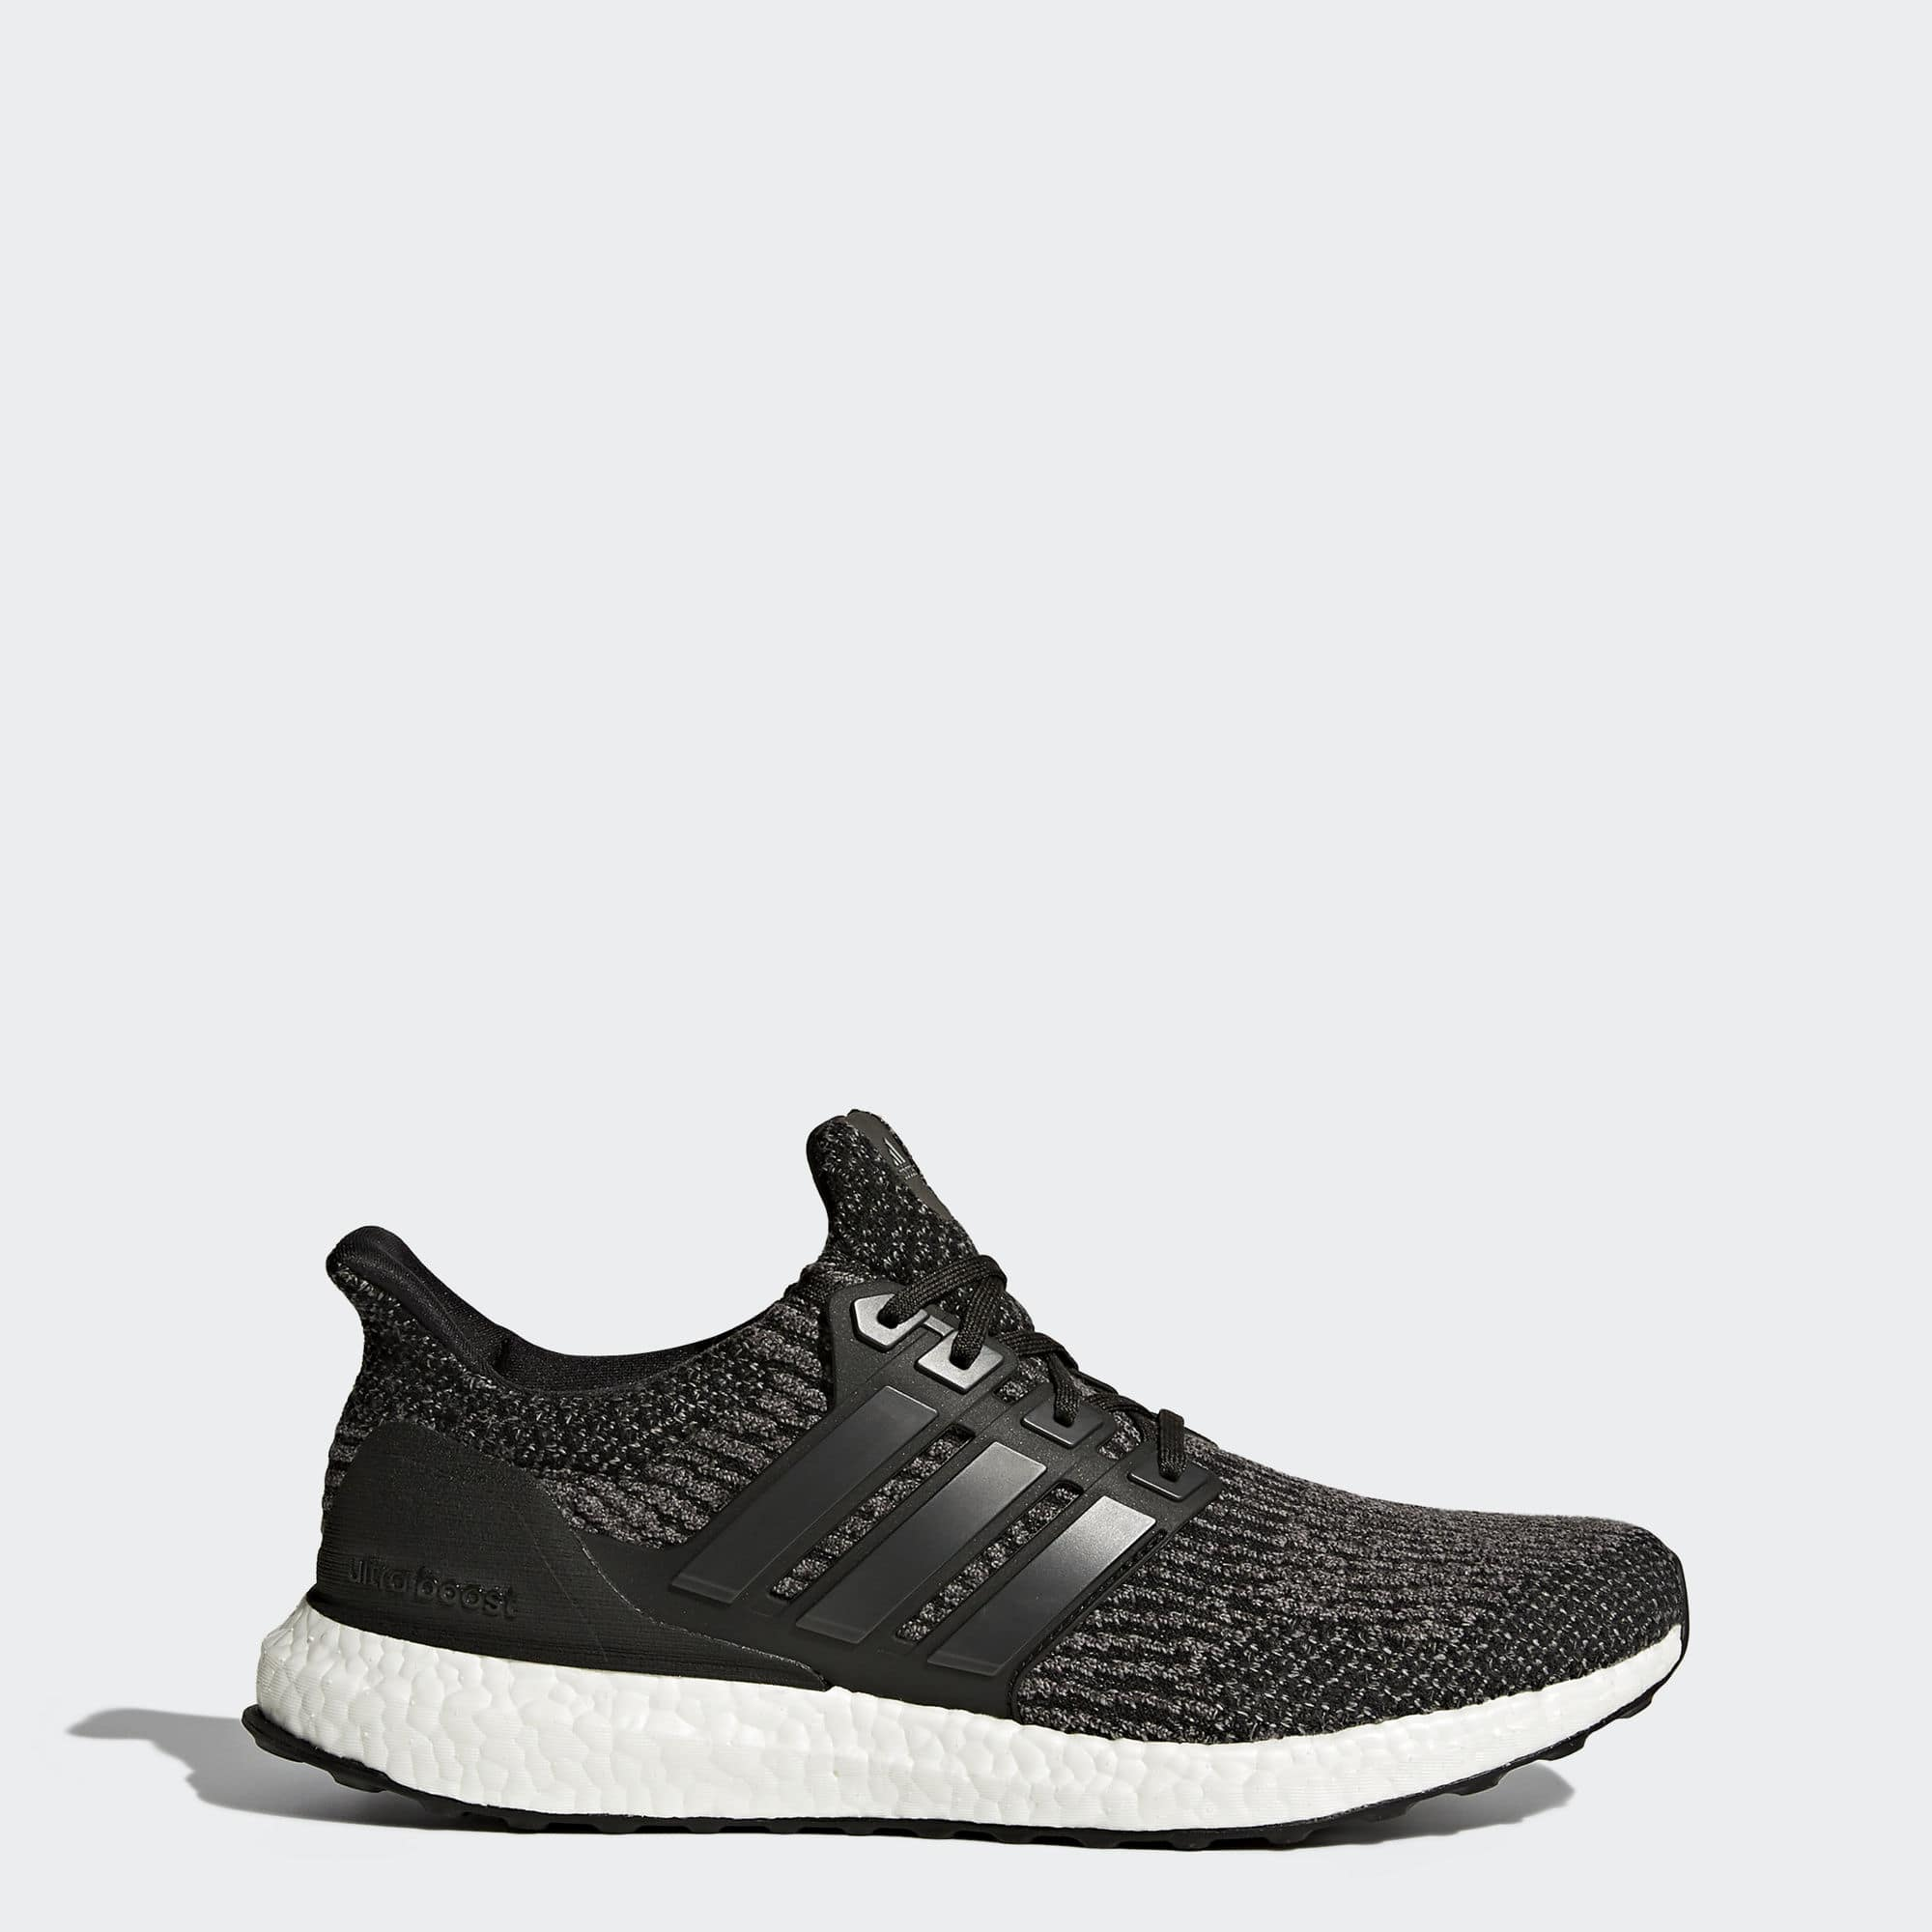 12e52a2c2bcd9 Men s Adidas Ultraboost (Black or Grey)  87.95 with 3 pairs of Parma 16  shorts.